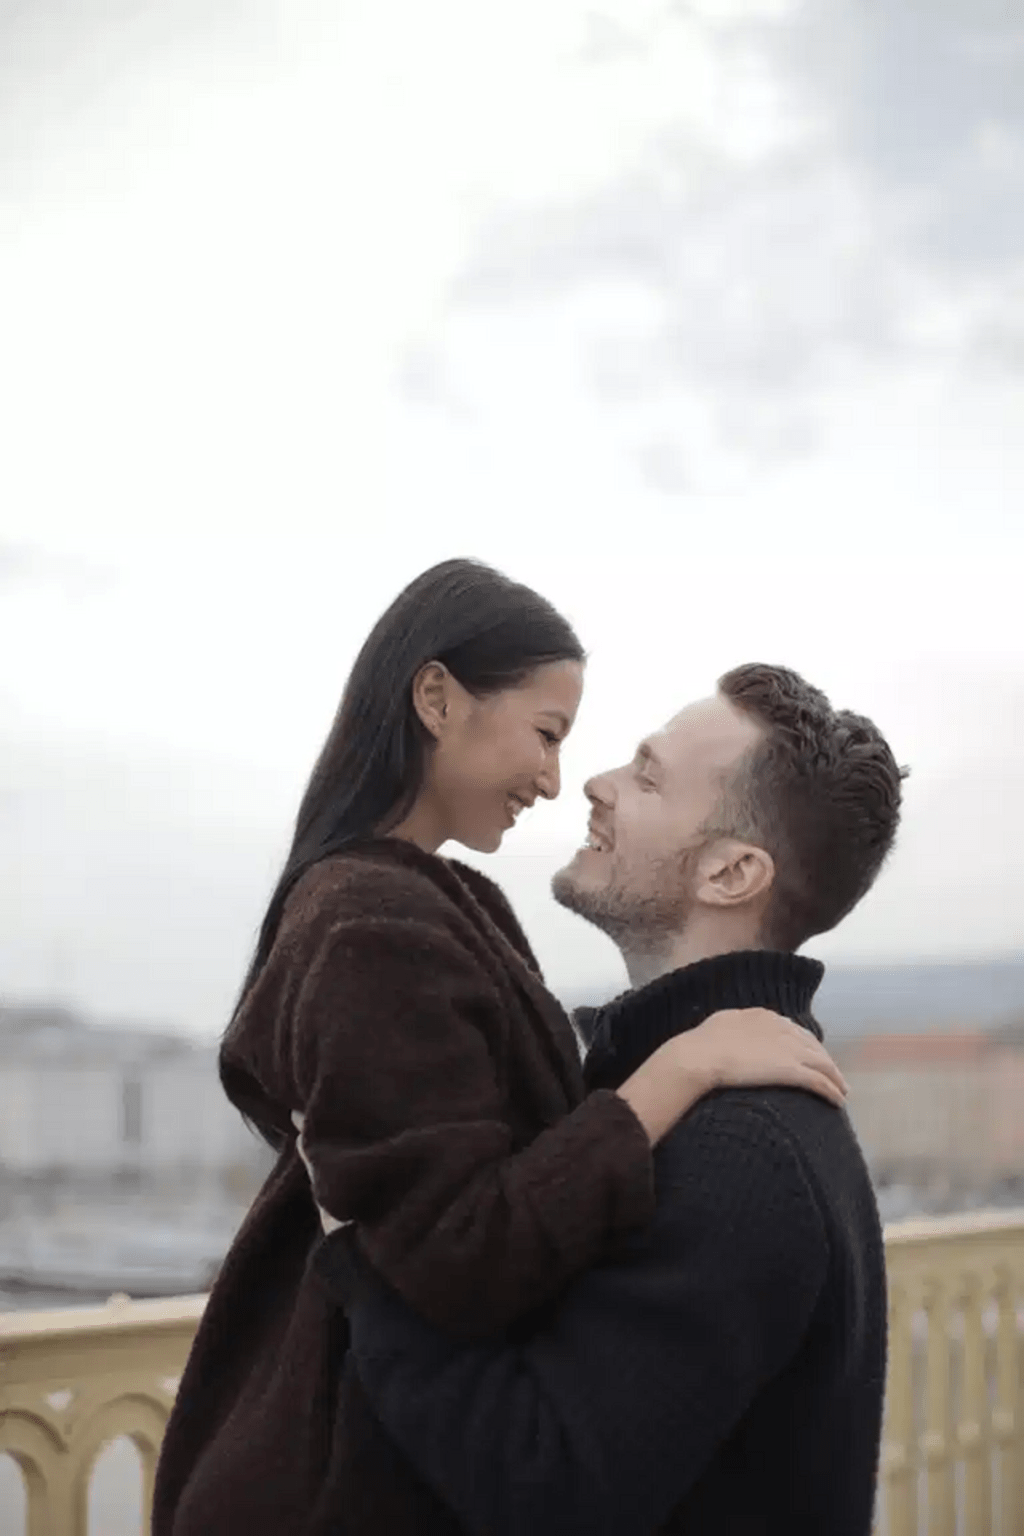 What to Say When Proposing Your Love?